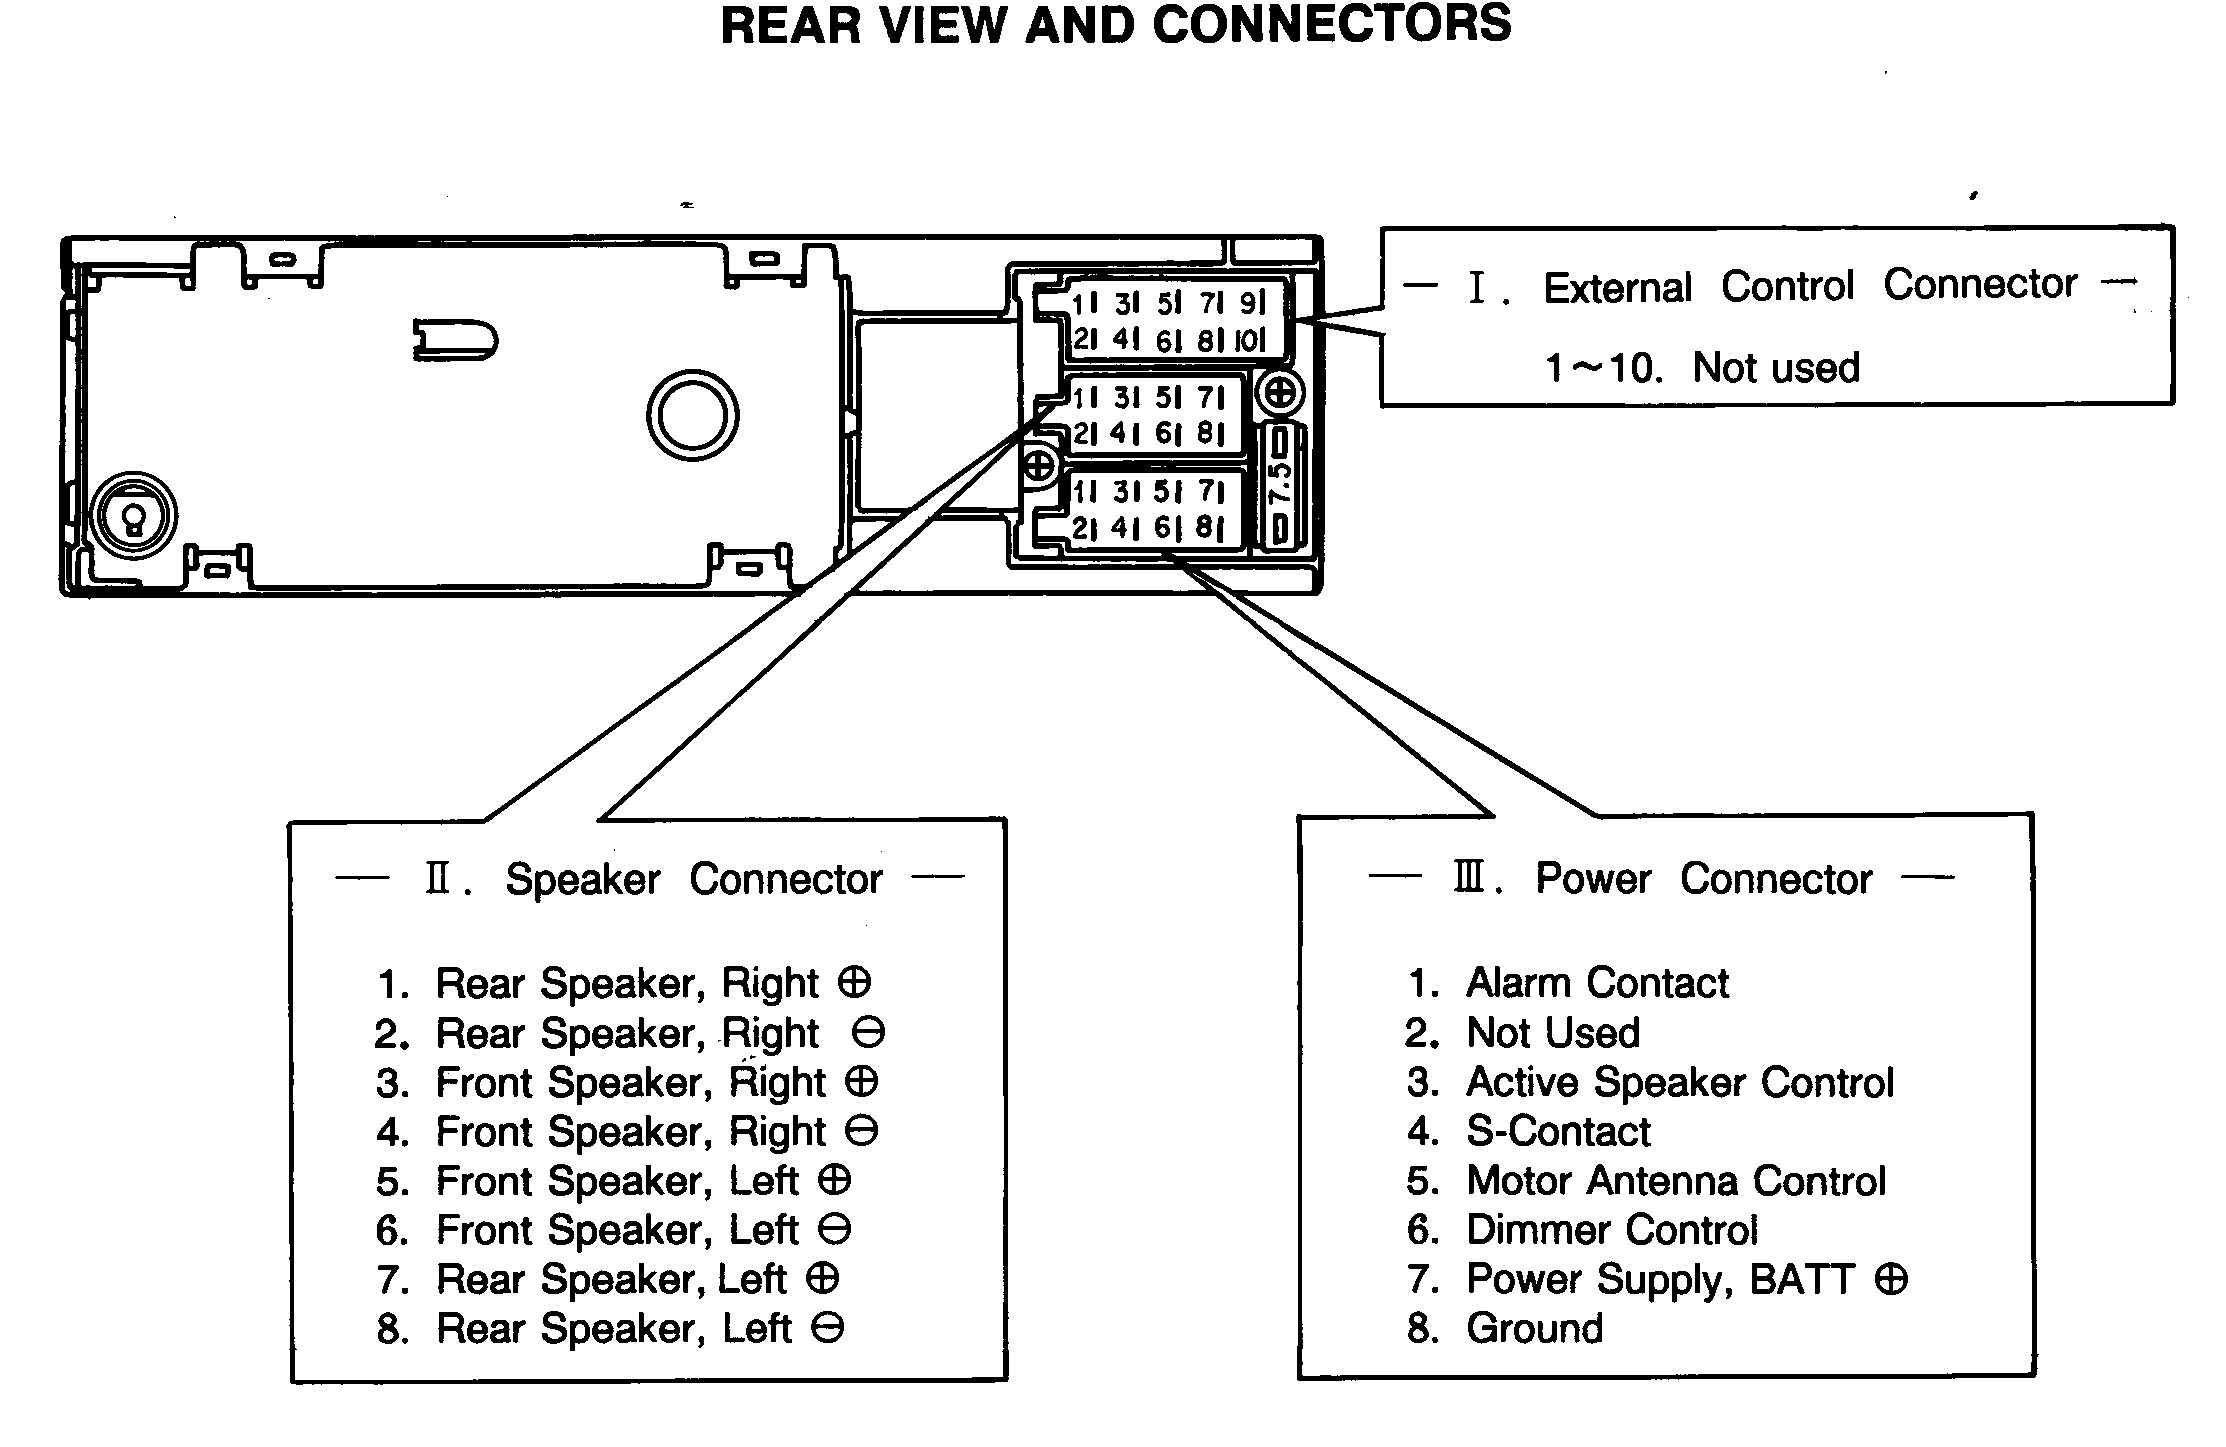 Wiring Diagrams For Car Audio In 2020 Car Stereo Diagram Radio